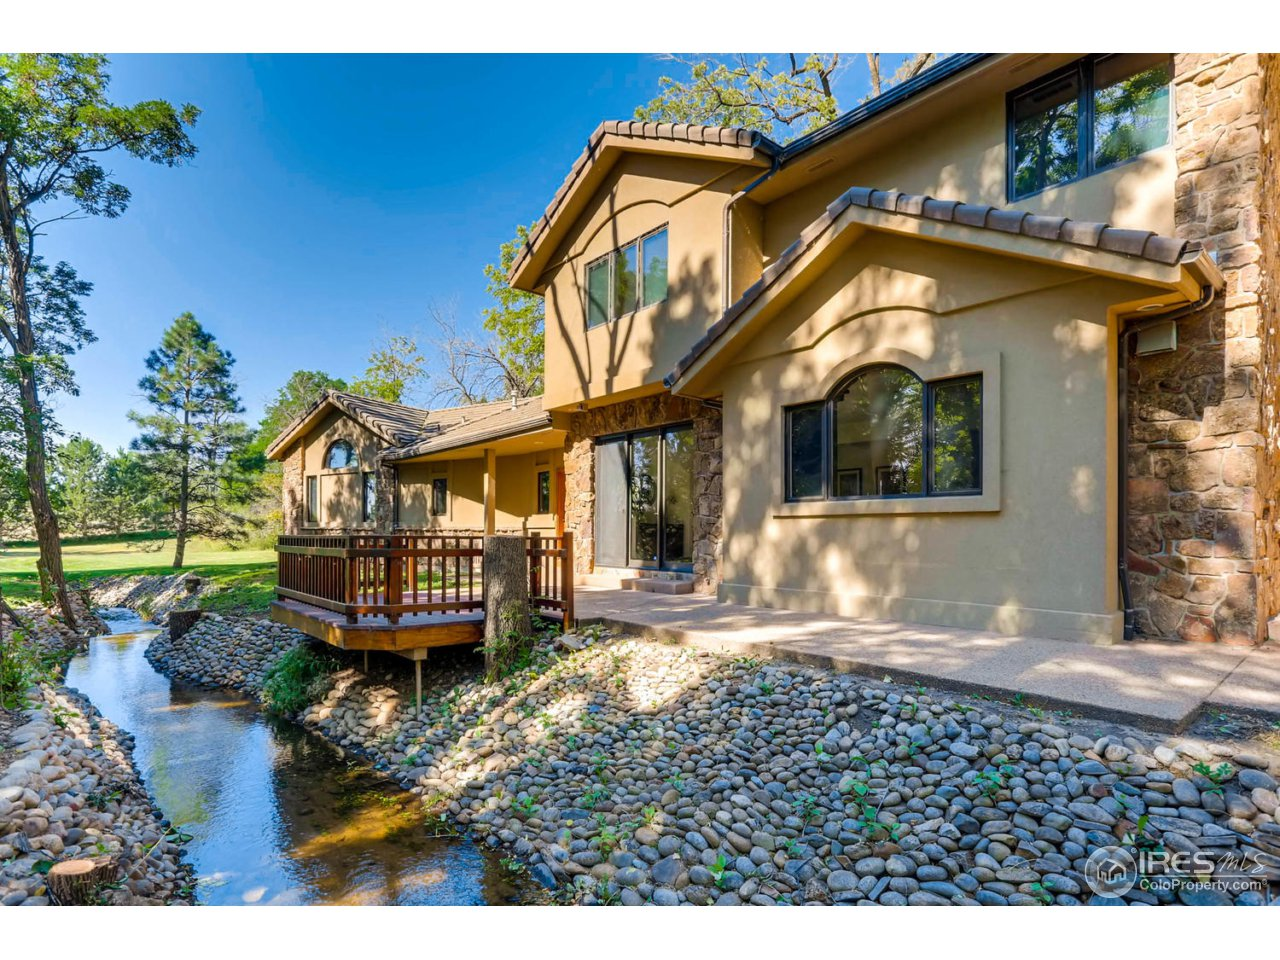 12800 Foothills Hwy, Longmont, CO 80503